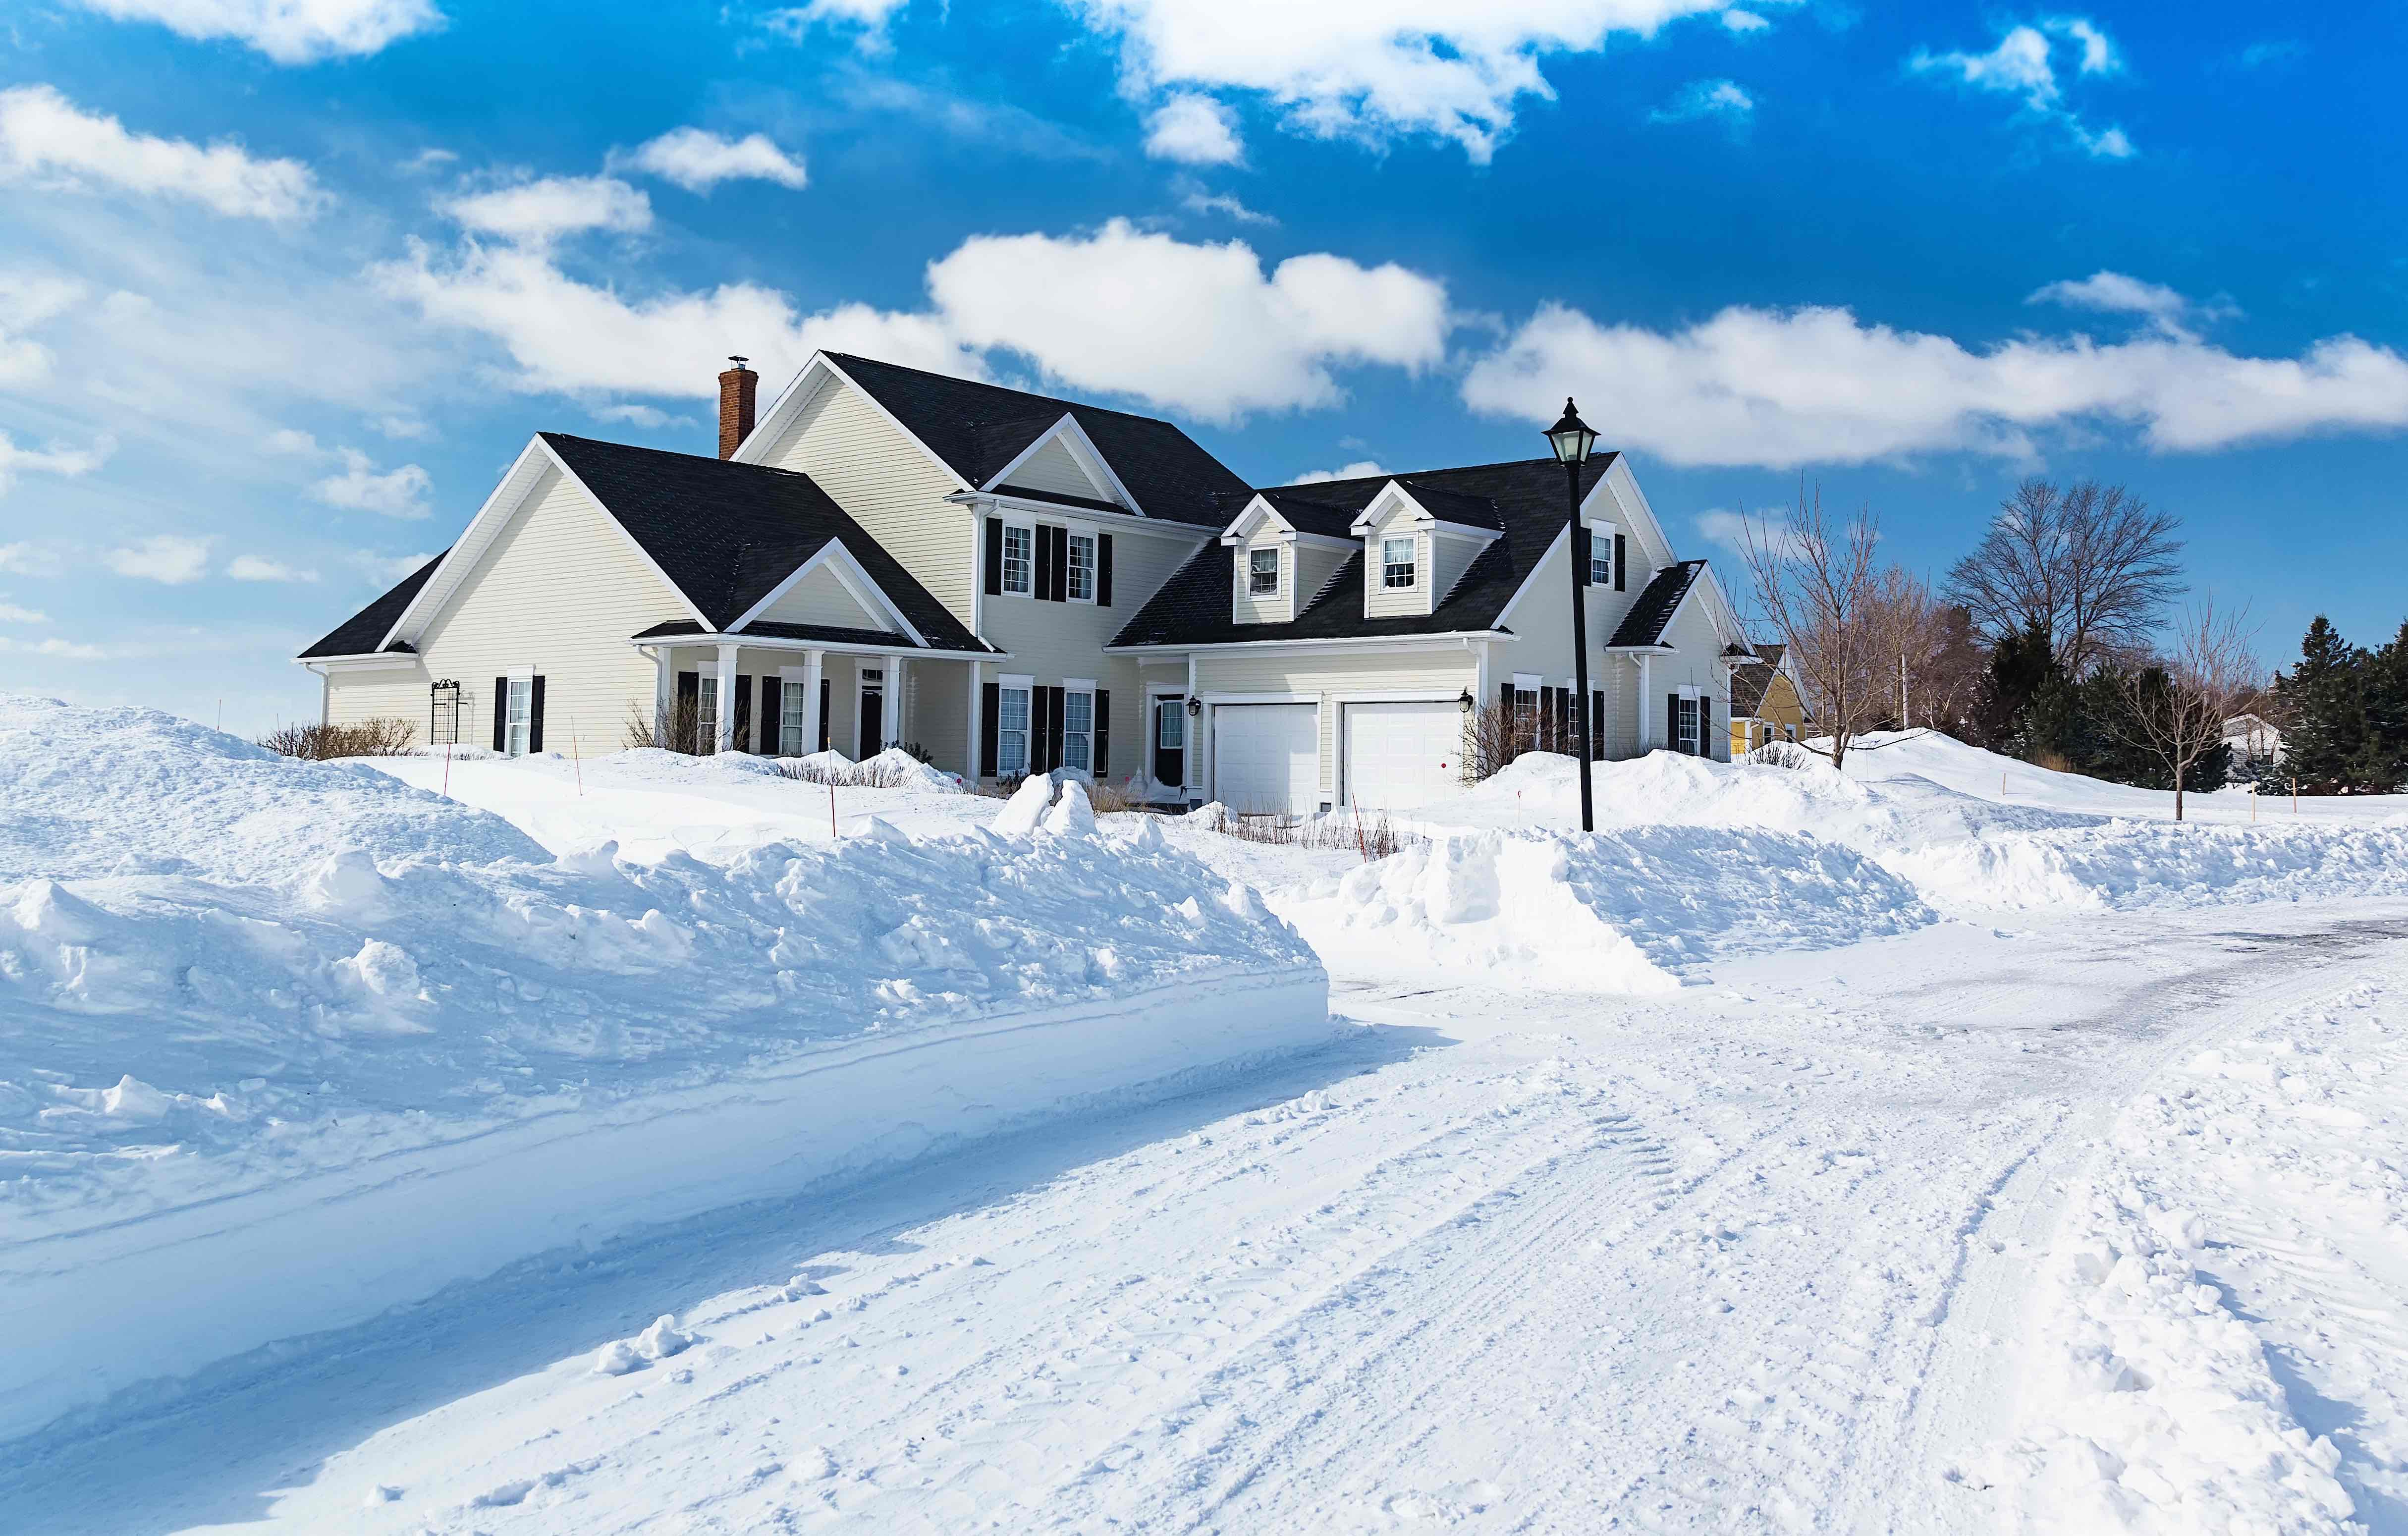 7 simple ways to winterize your home this fall - What temperature to keep house in winter ...